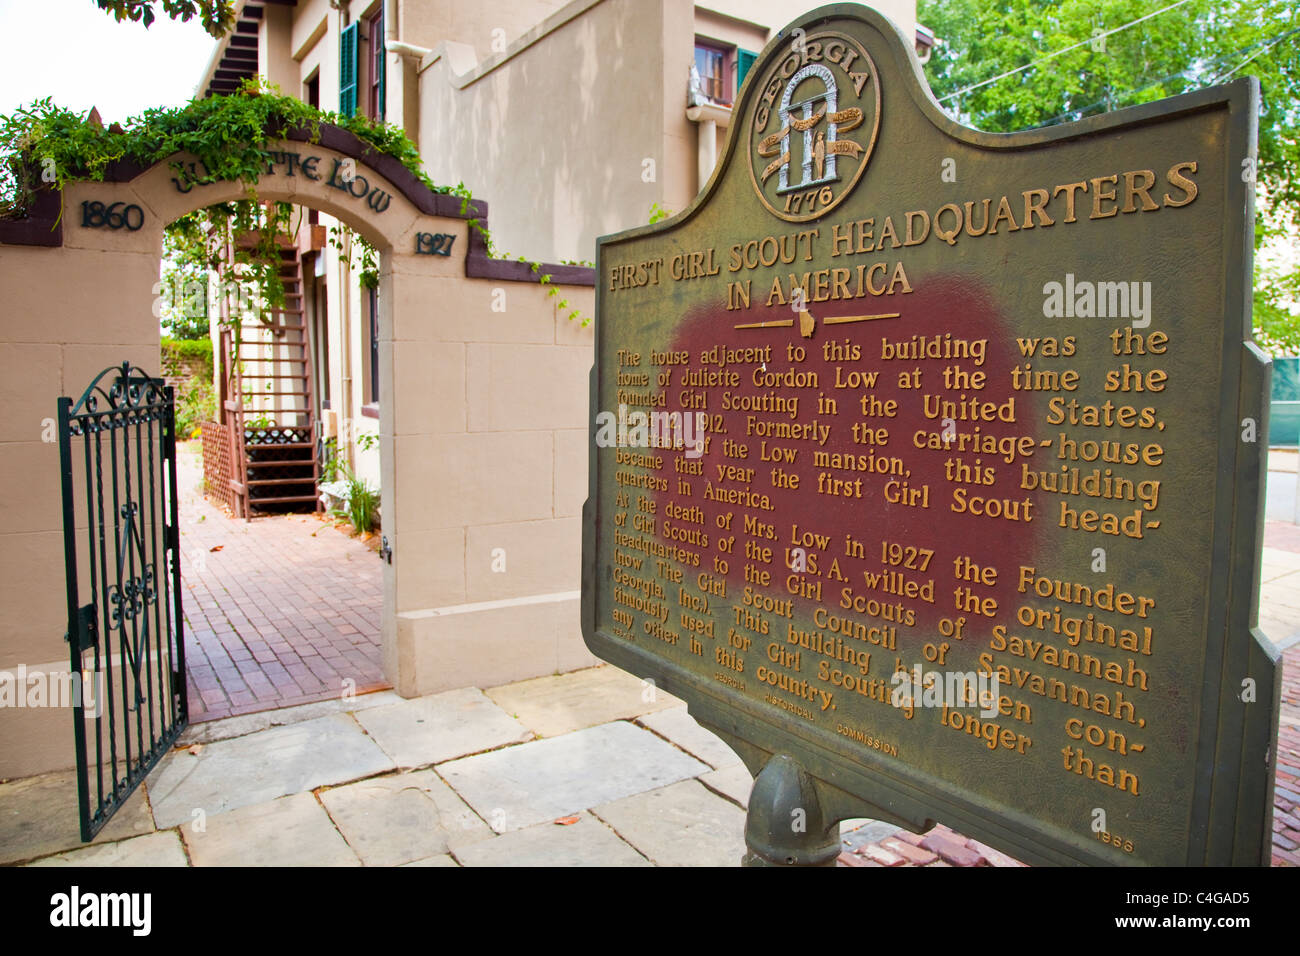 First Girl Scout Headquarters in America, Savannah, Georgia - Stock Image